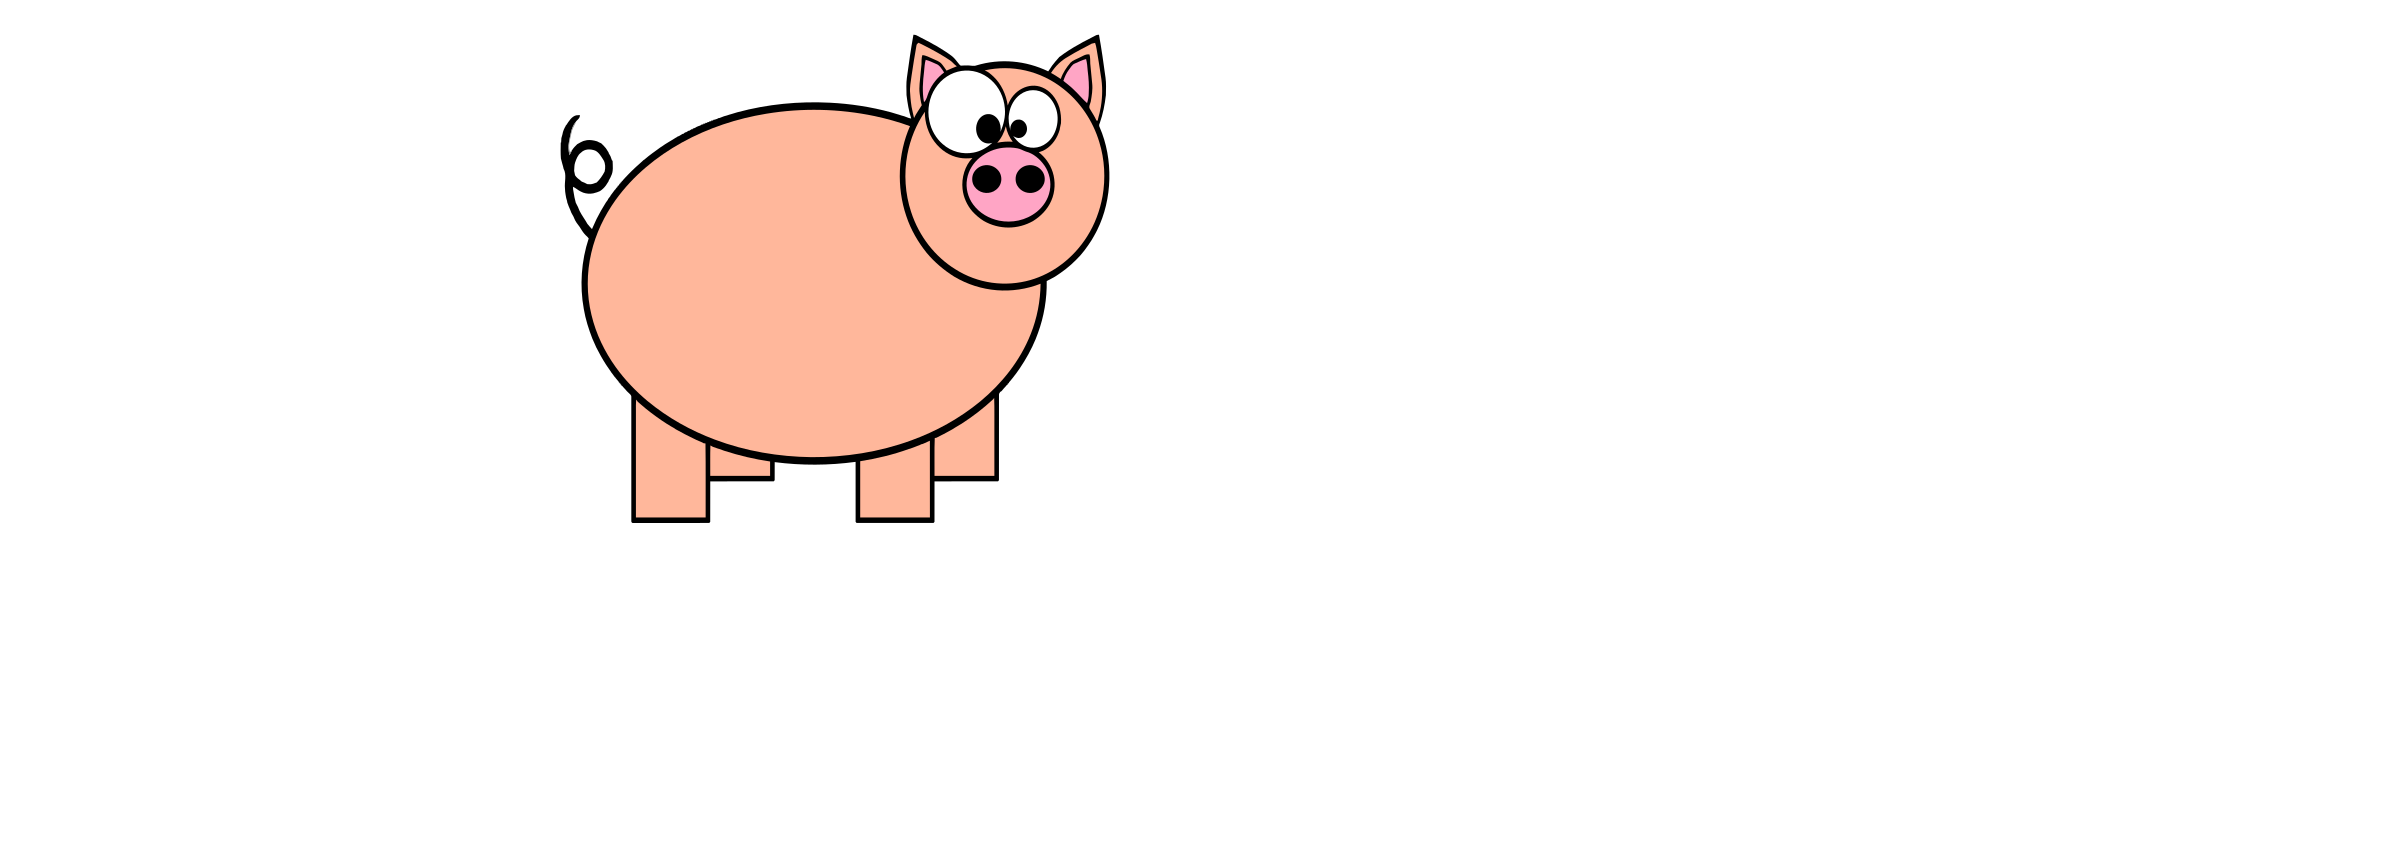 P for Pig by pranav